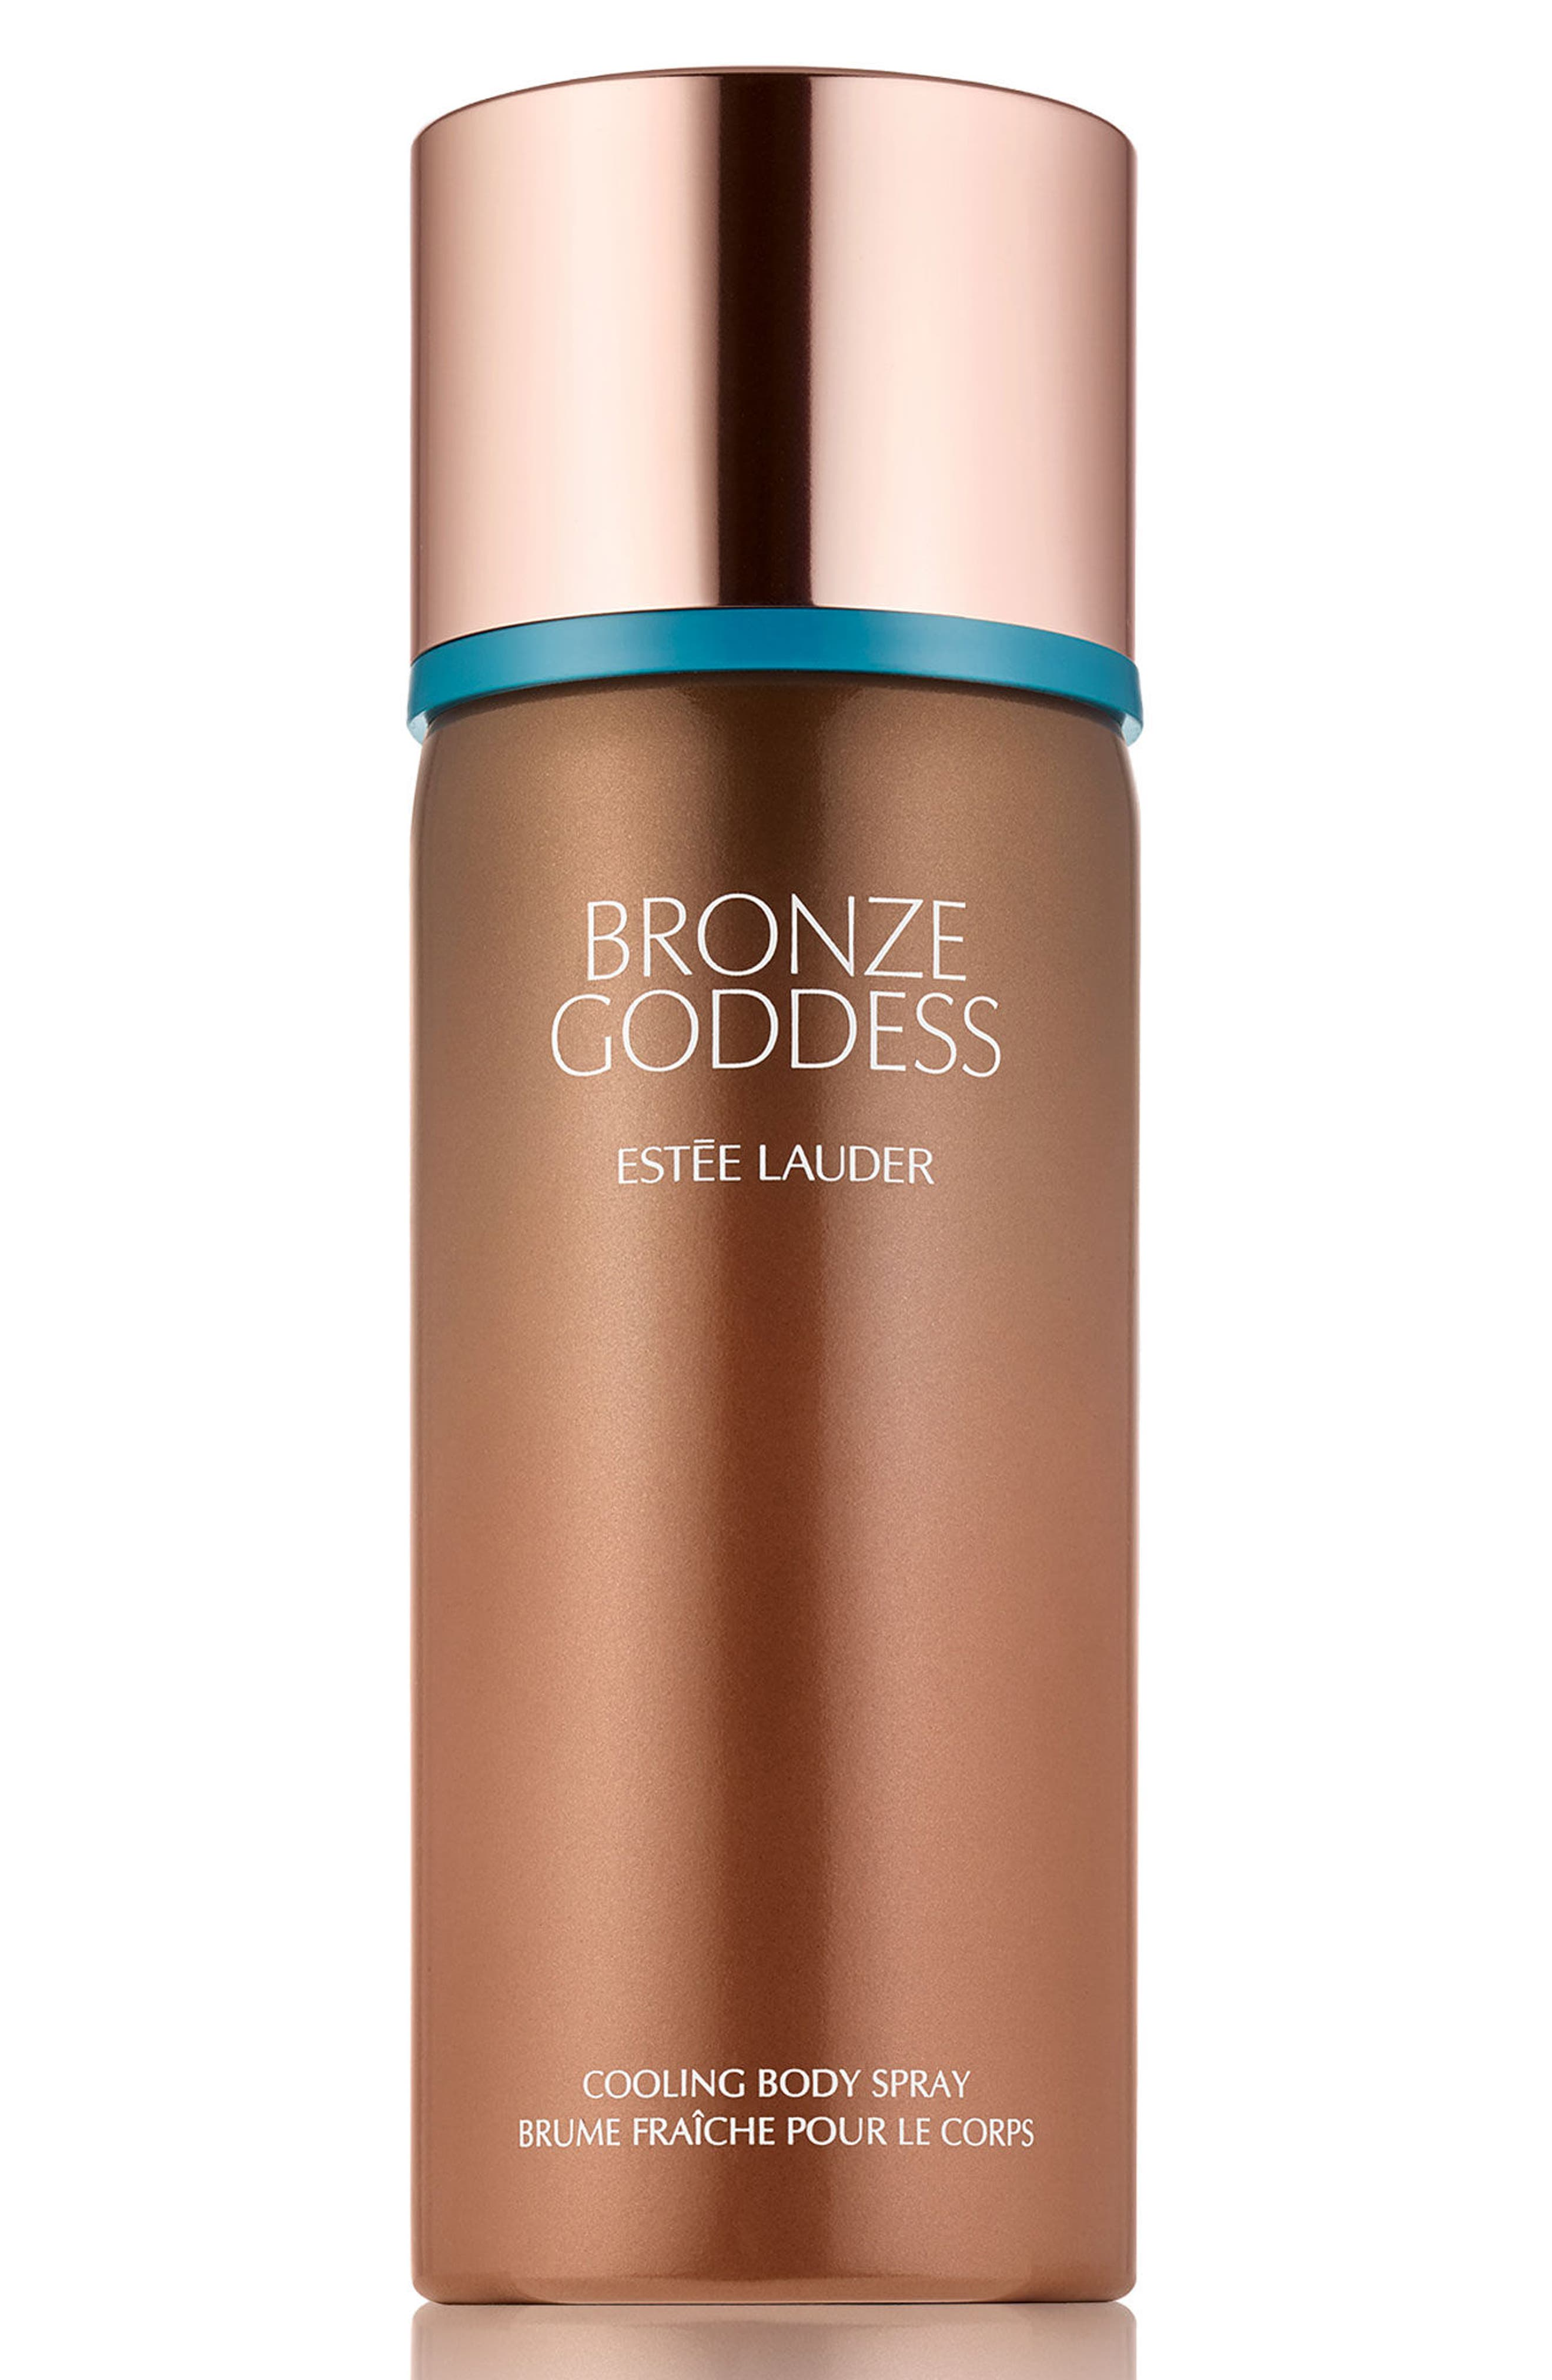 Bronze Goddess Cooling Body Spray,                             Main thumbnail 1, color,                             No Color